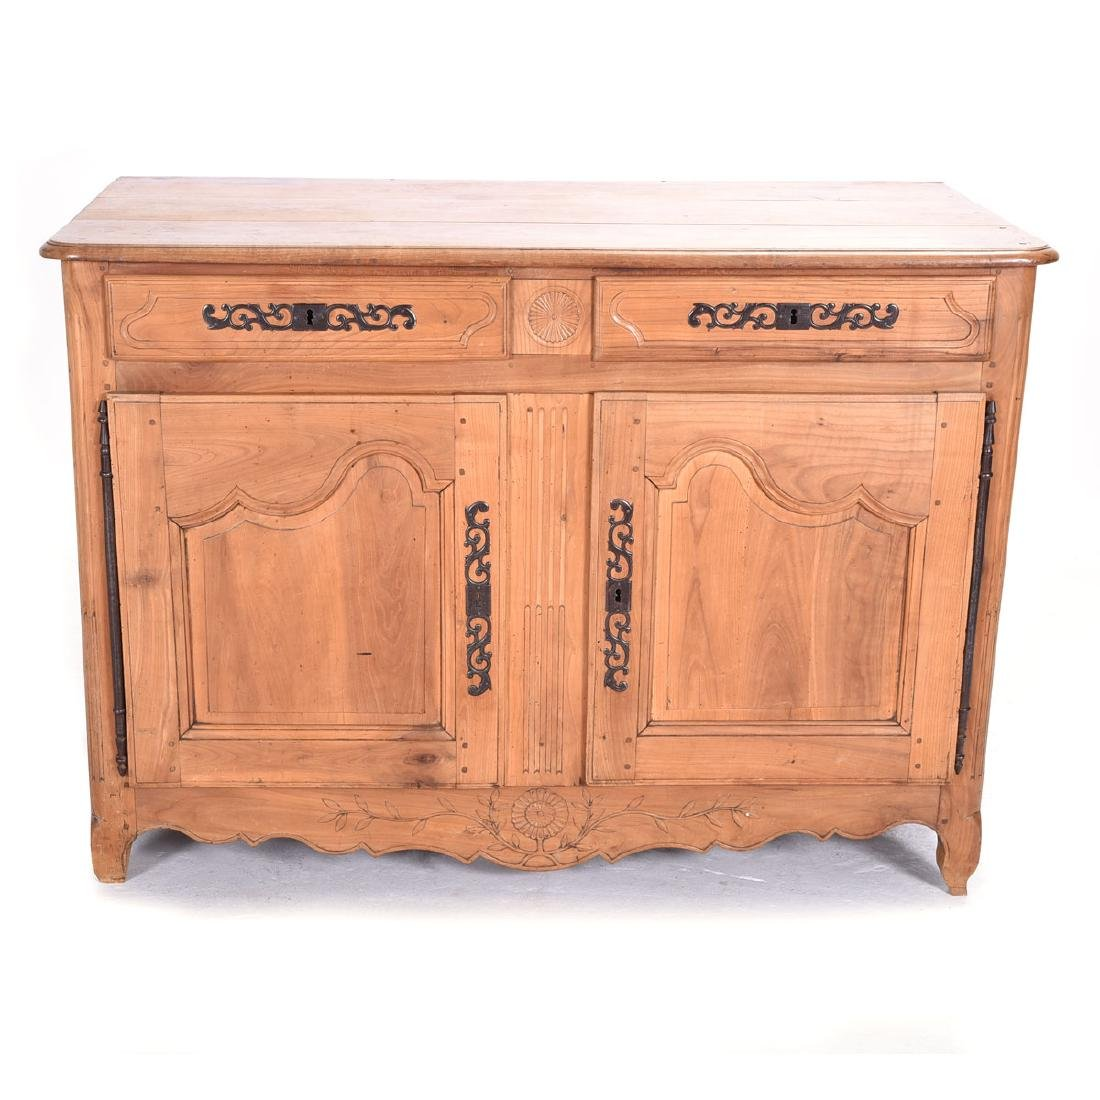 French Provincial Fruitwood Sideboard with Iron and